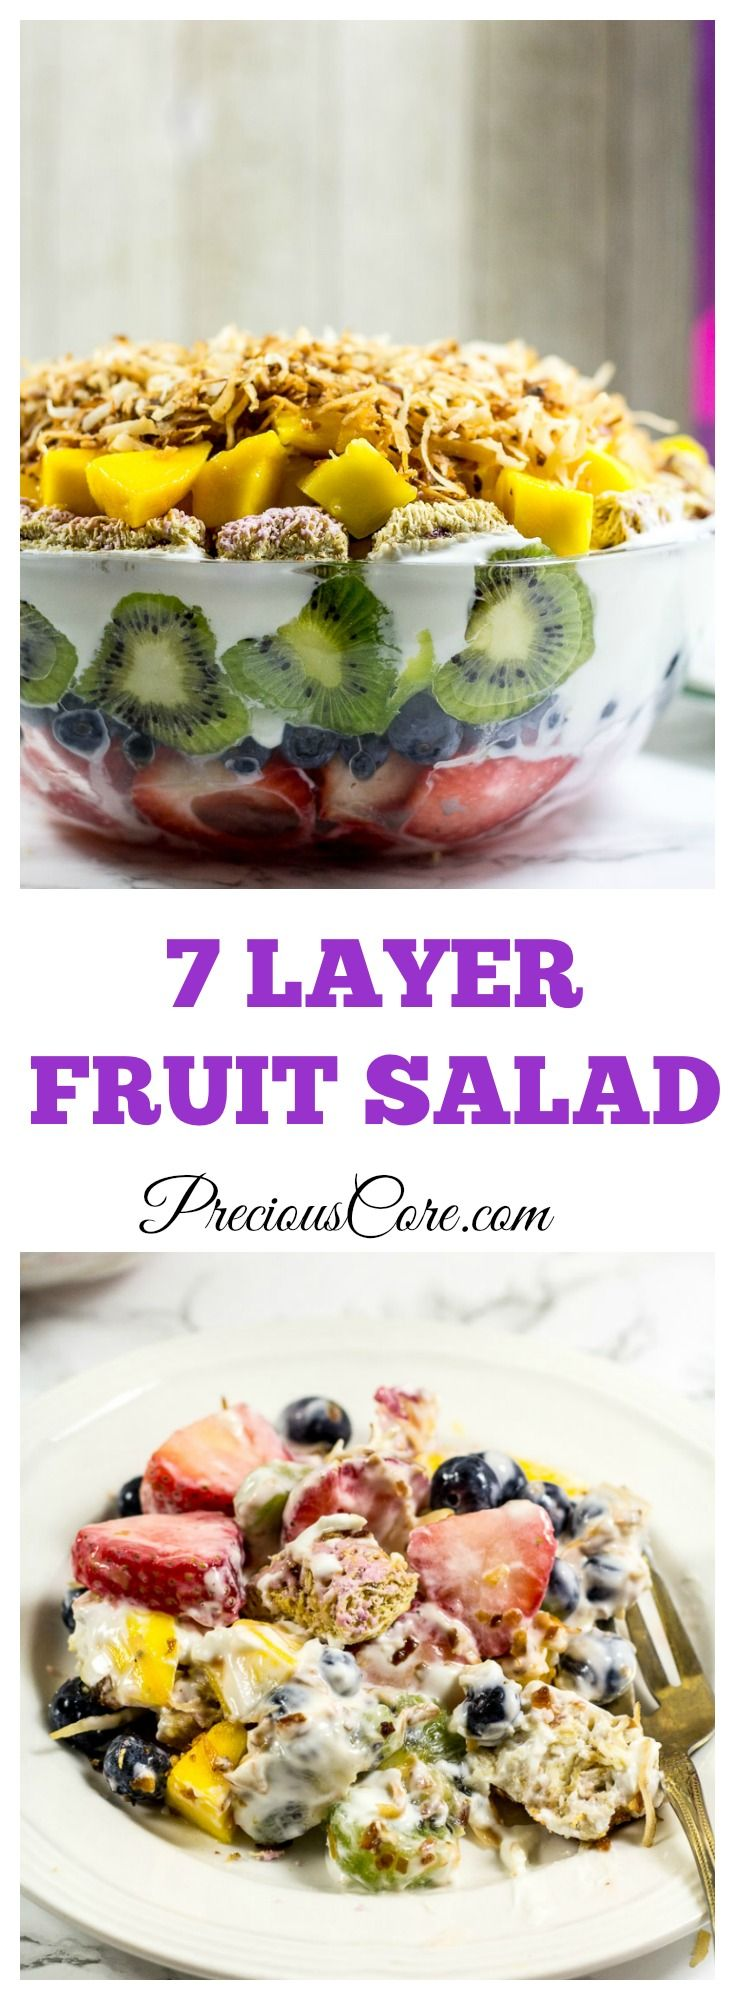 7 Layer Fruit Salad - Precious Core #PerfectionWithPost #CerealAnytime #ad